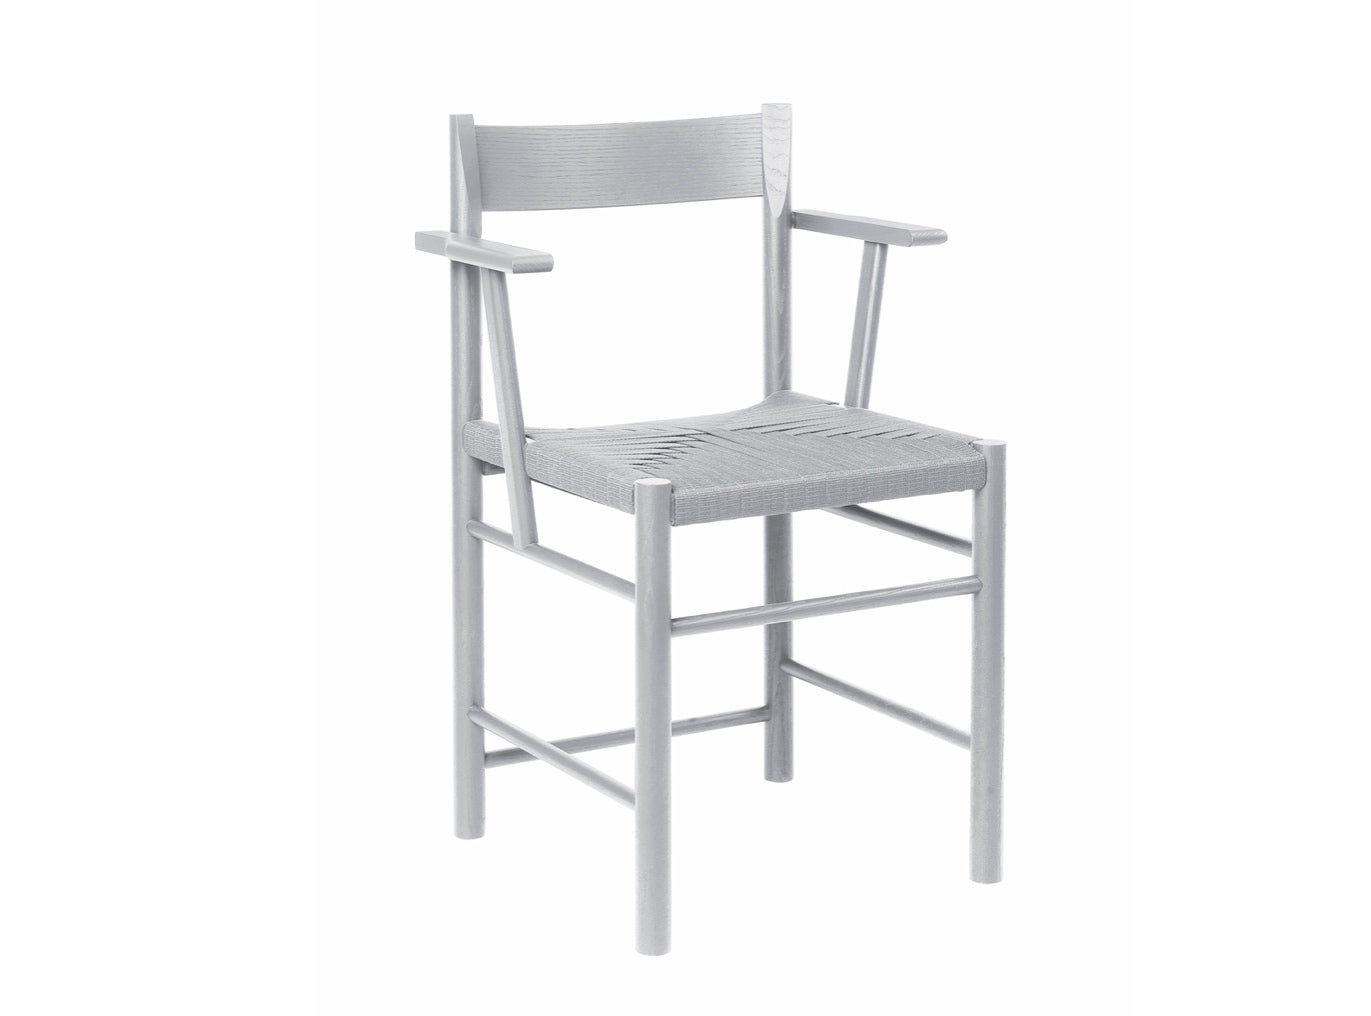 Subscription_Brdr_Krüger_Armed_Gray_F_chair_minimalistic_four_legged_meeting_conference_room_lightweight